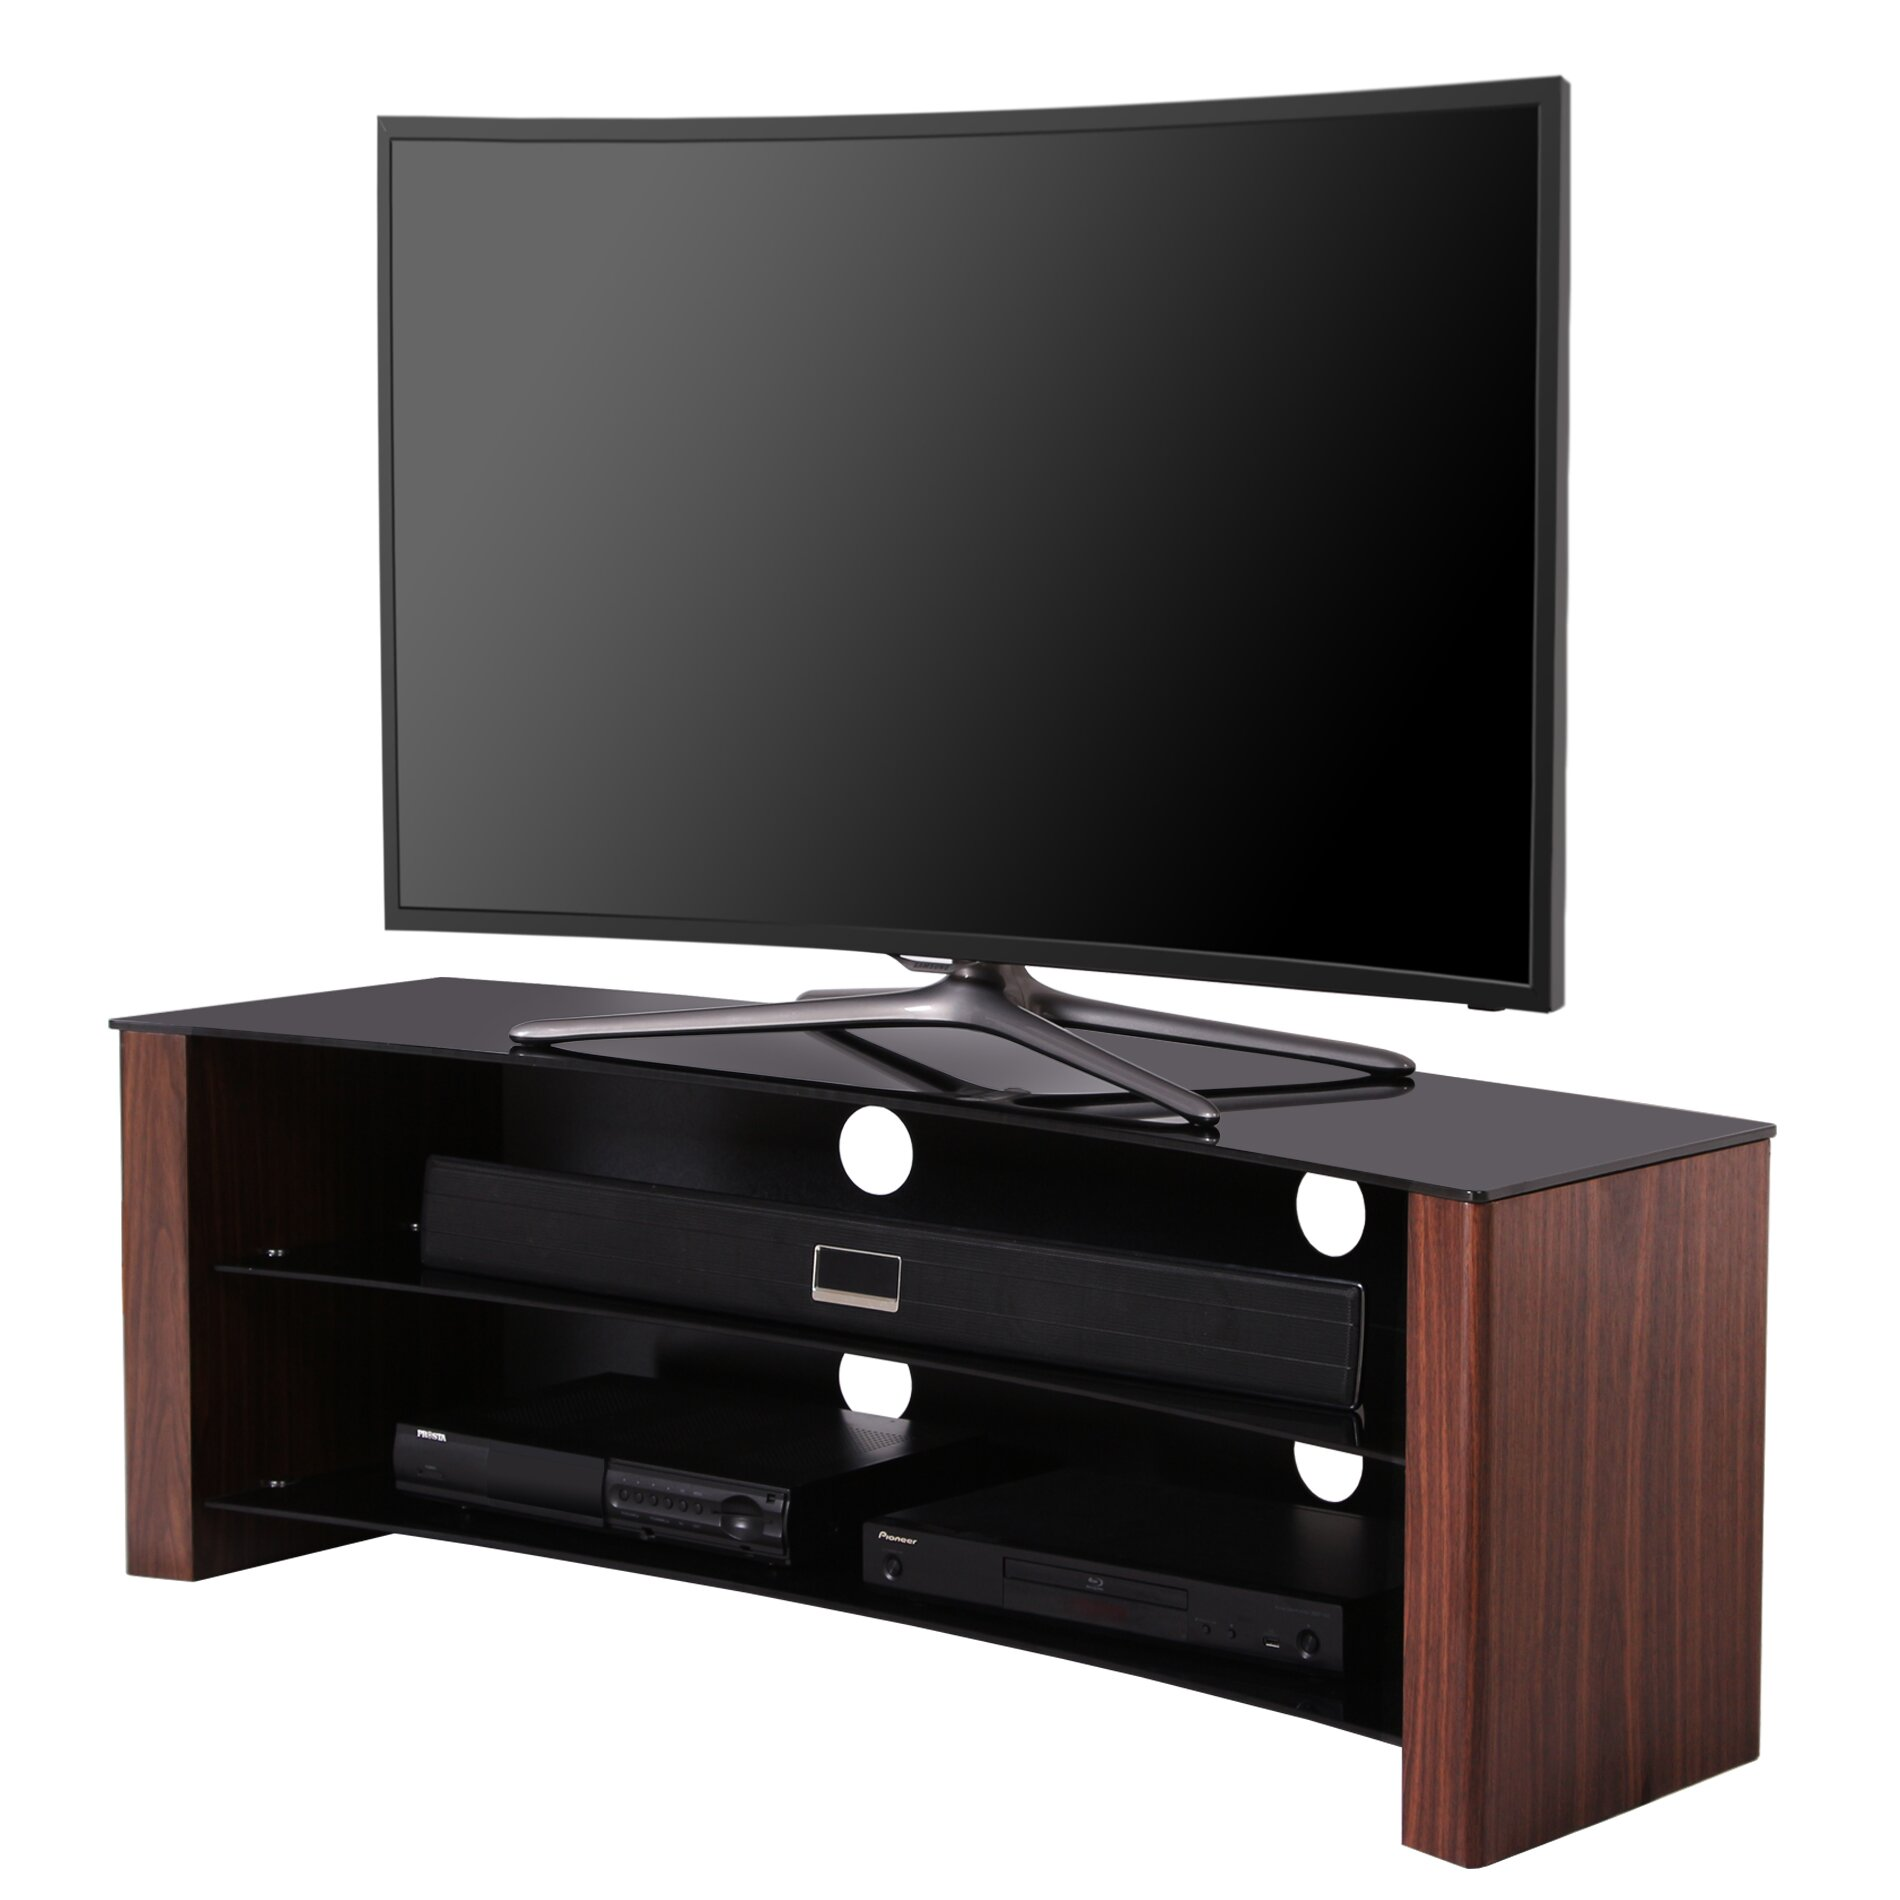 "Hokku Designs TV Stand for TVs up to 55"" & Reviews"